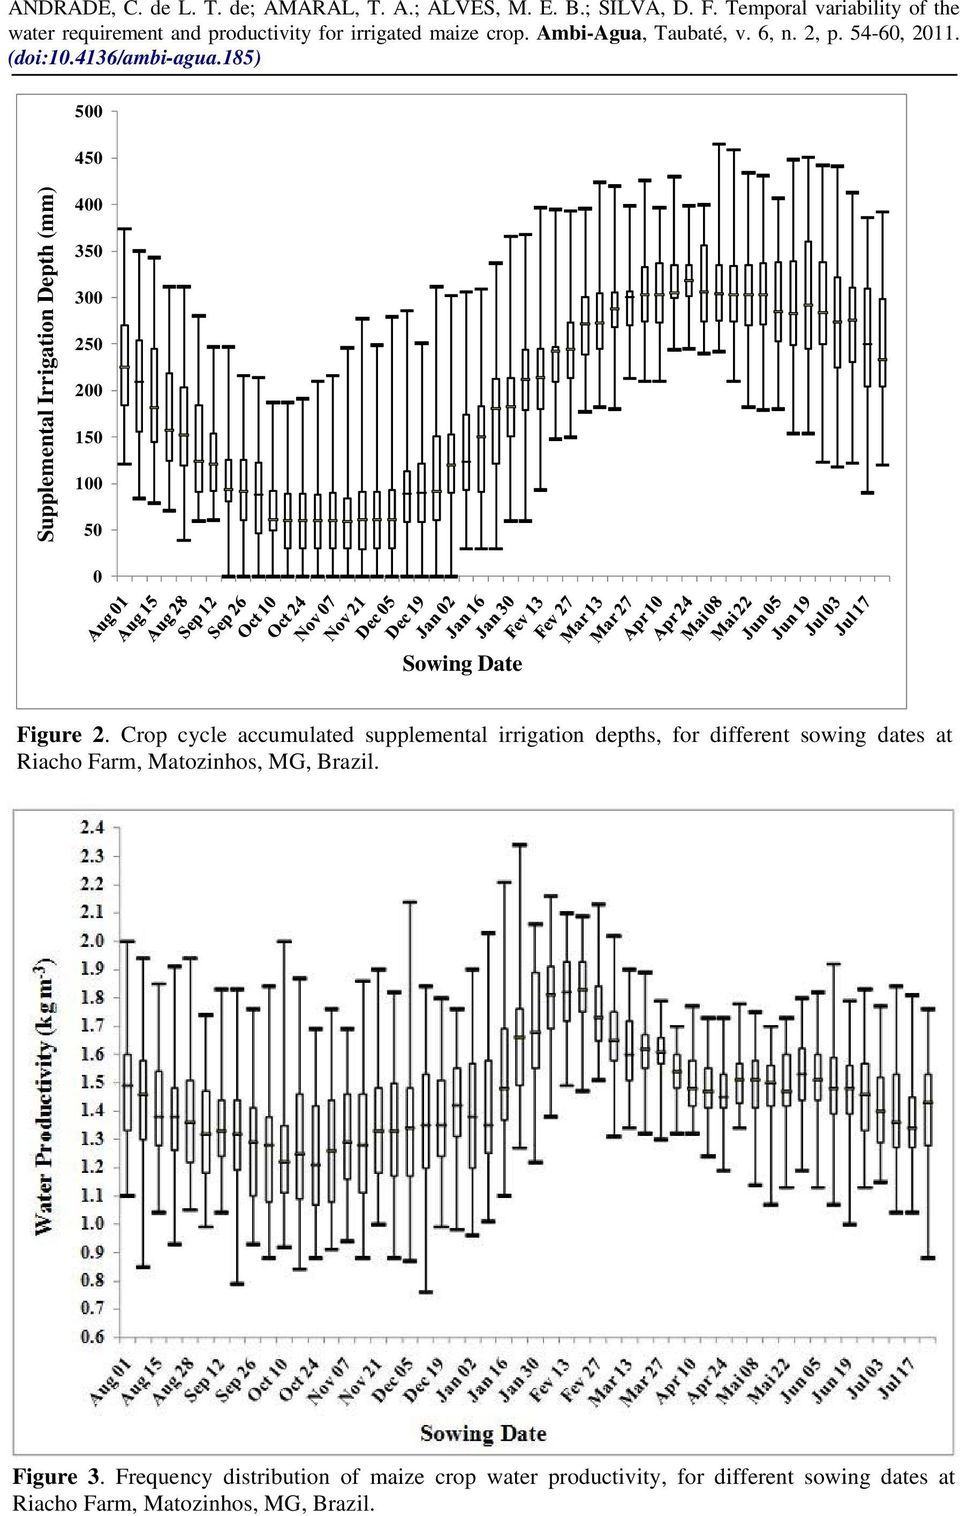 Crop cycle accumulated supplemental irrigation depths, for different sowing dates at